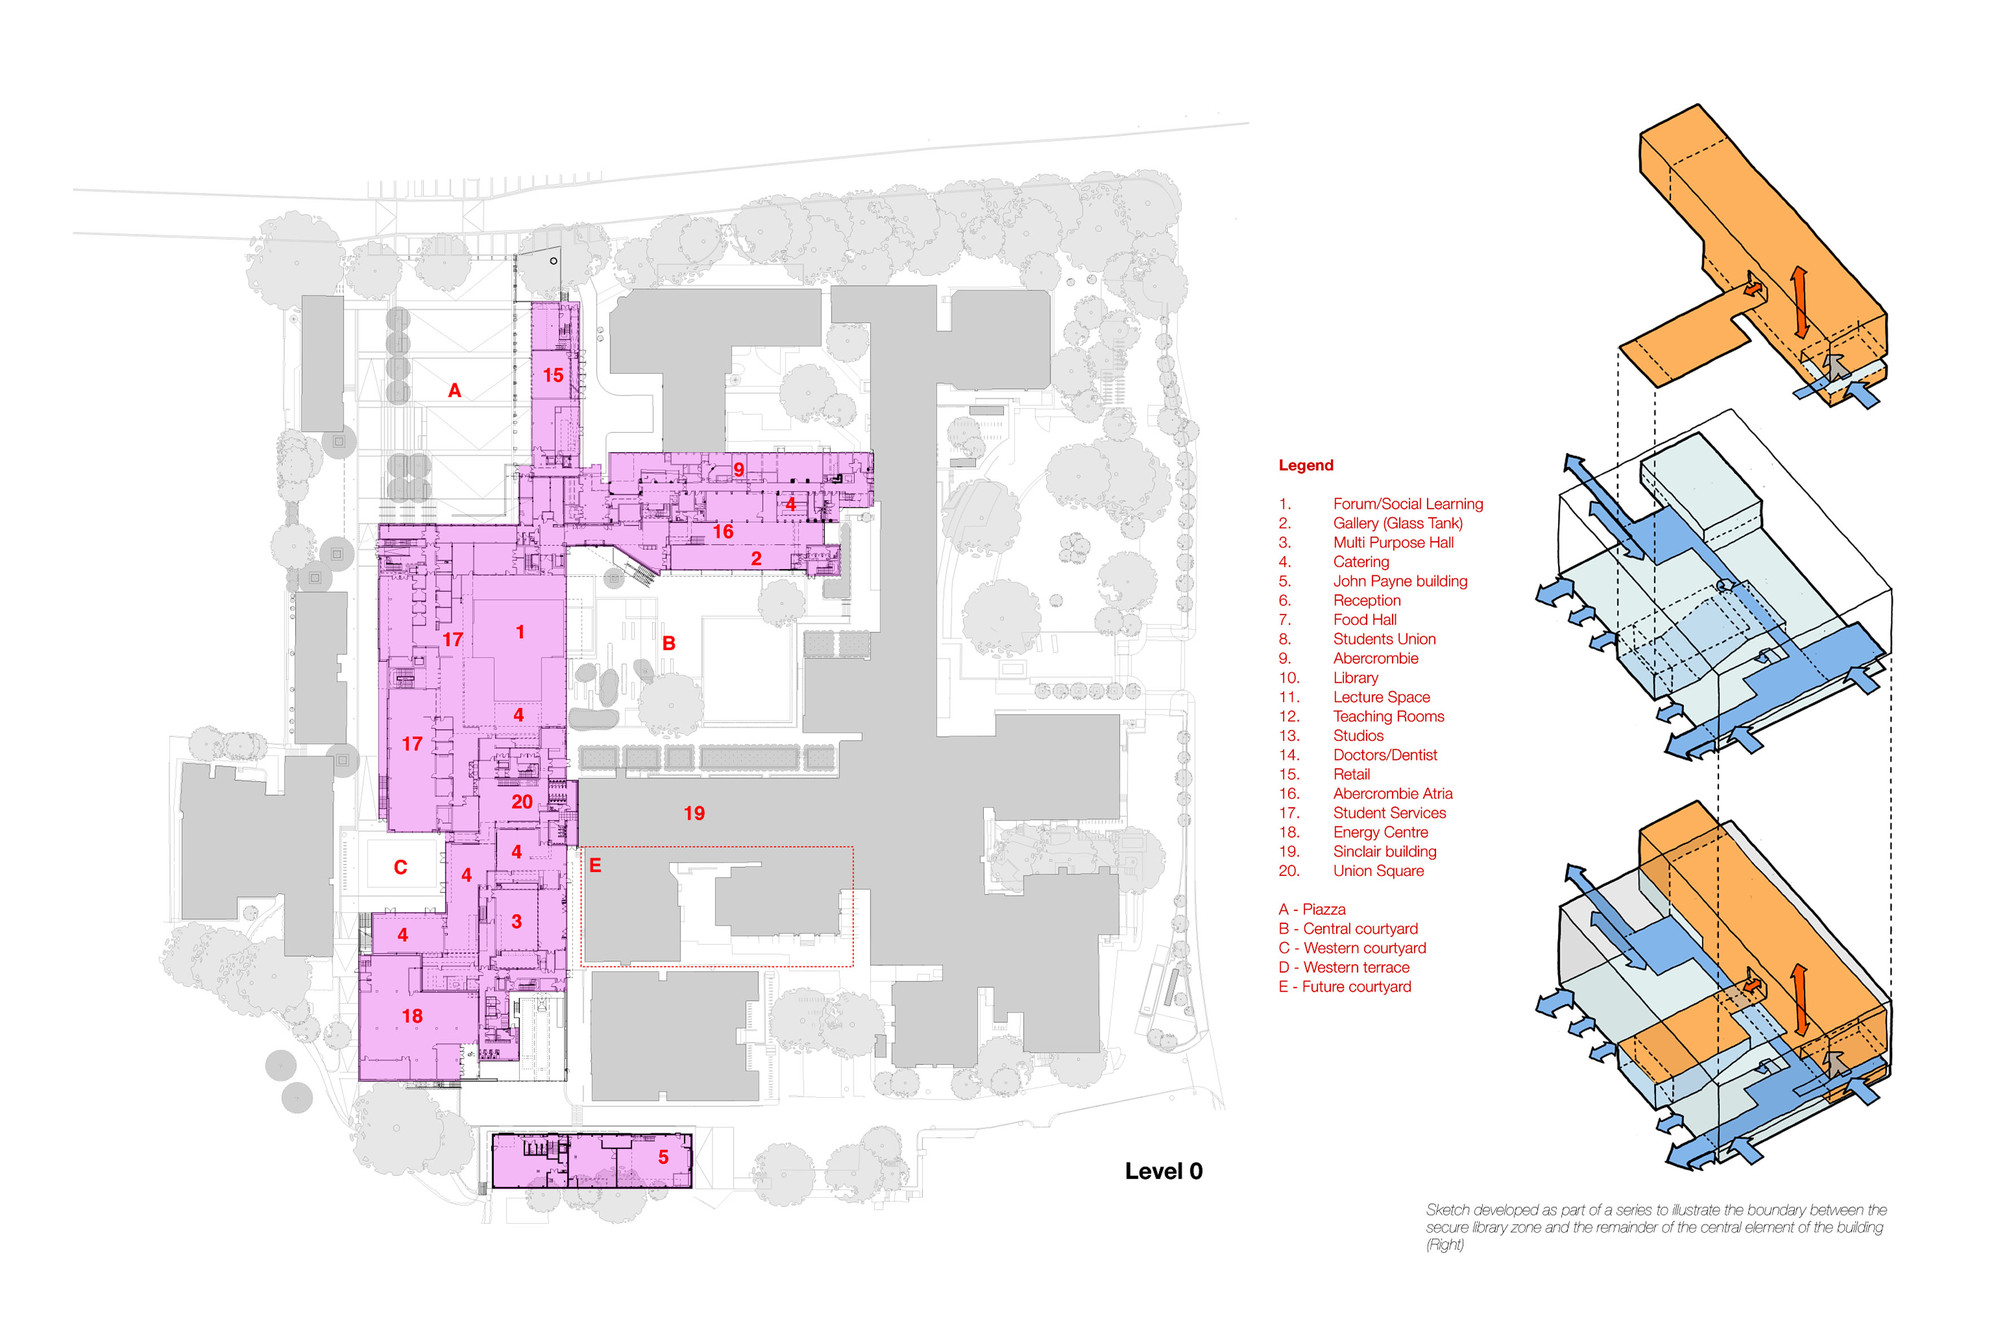 Gallery Of John Henry Brookes And Abercrombie Building Design Engine Architects 14